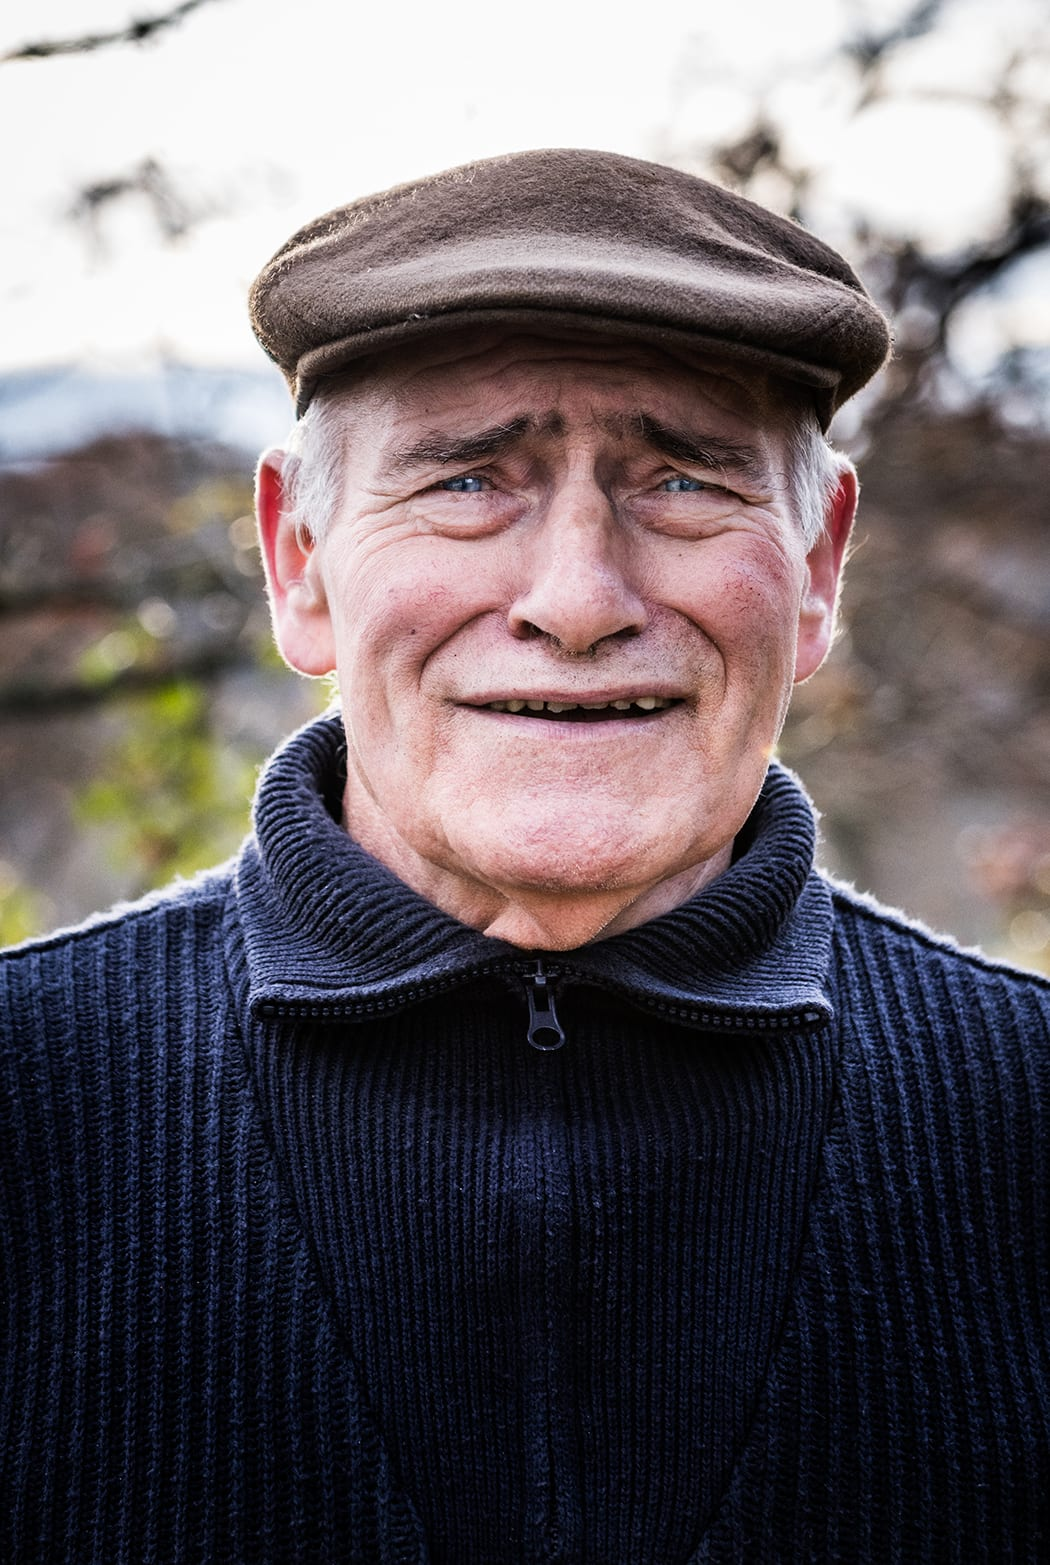 Bernard Molas, who with his wife Monique operates La Ferme de Mounet, a duck farm and bed-and-breakfast near Eauze.